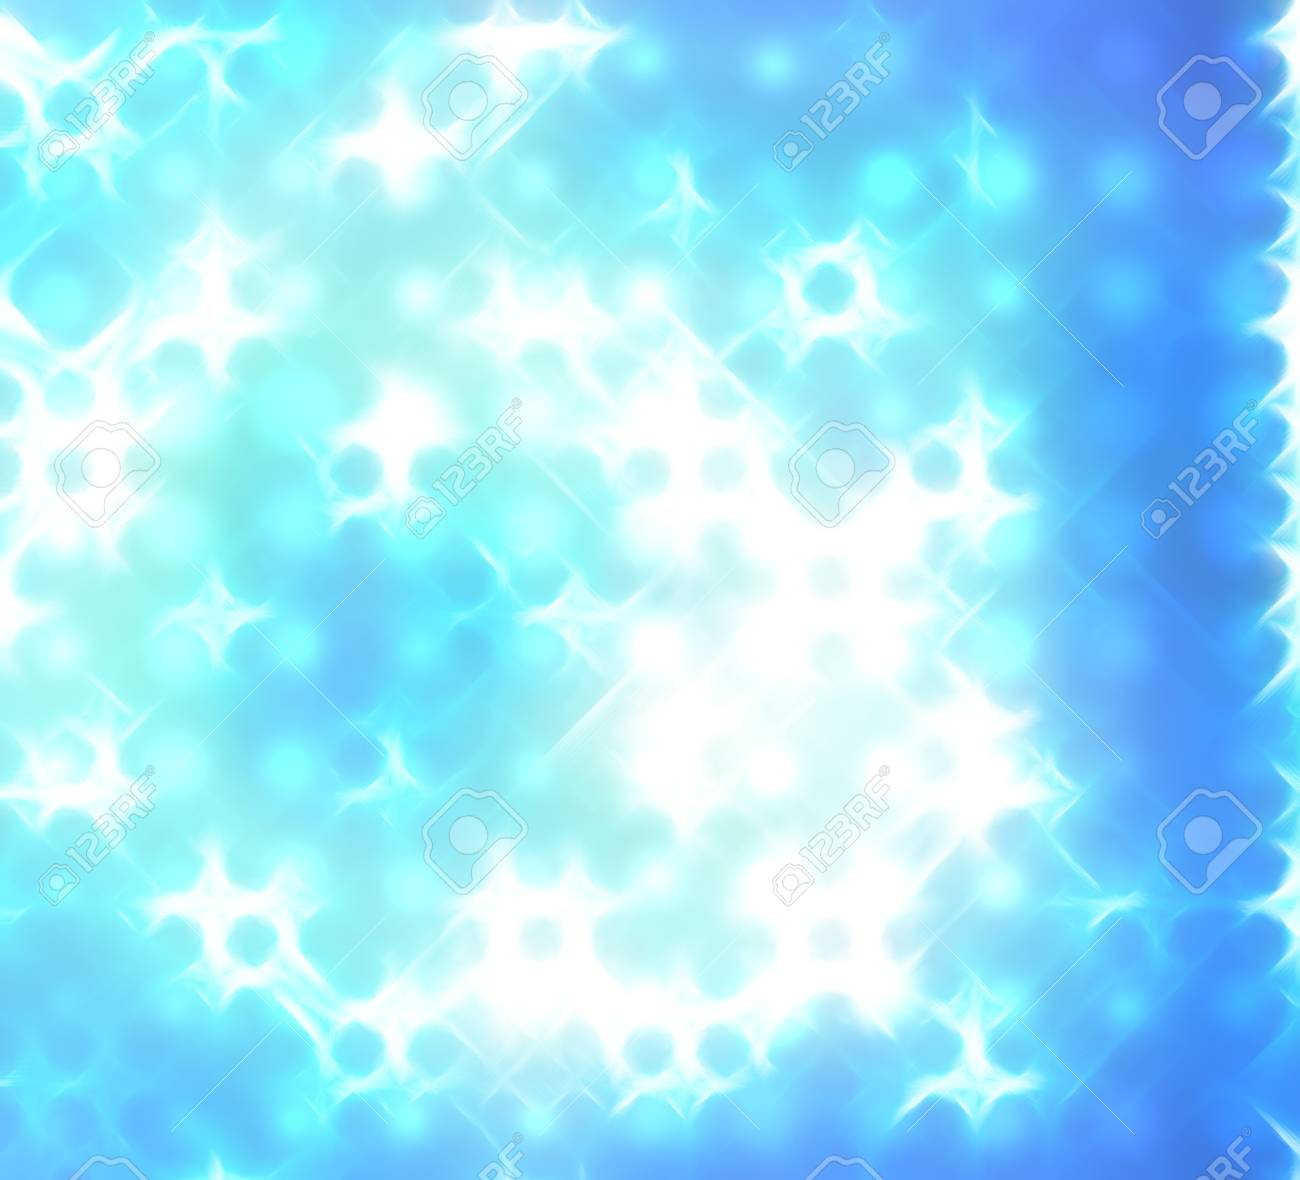 Raster abstract background blue mixed lines and shadows Stock Photo - 21289289